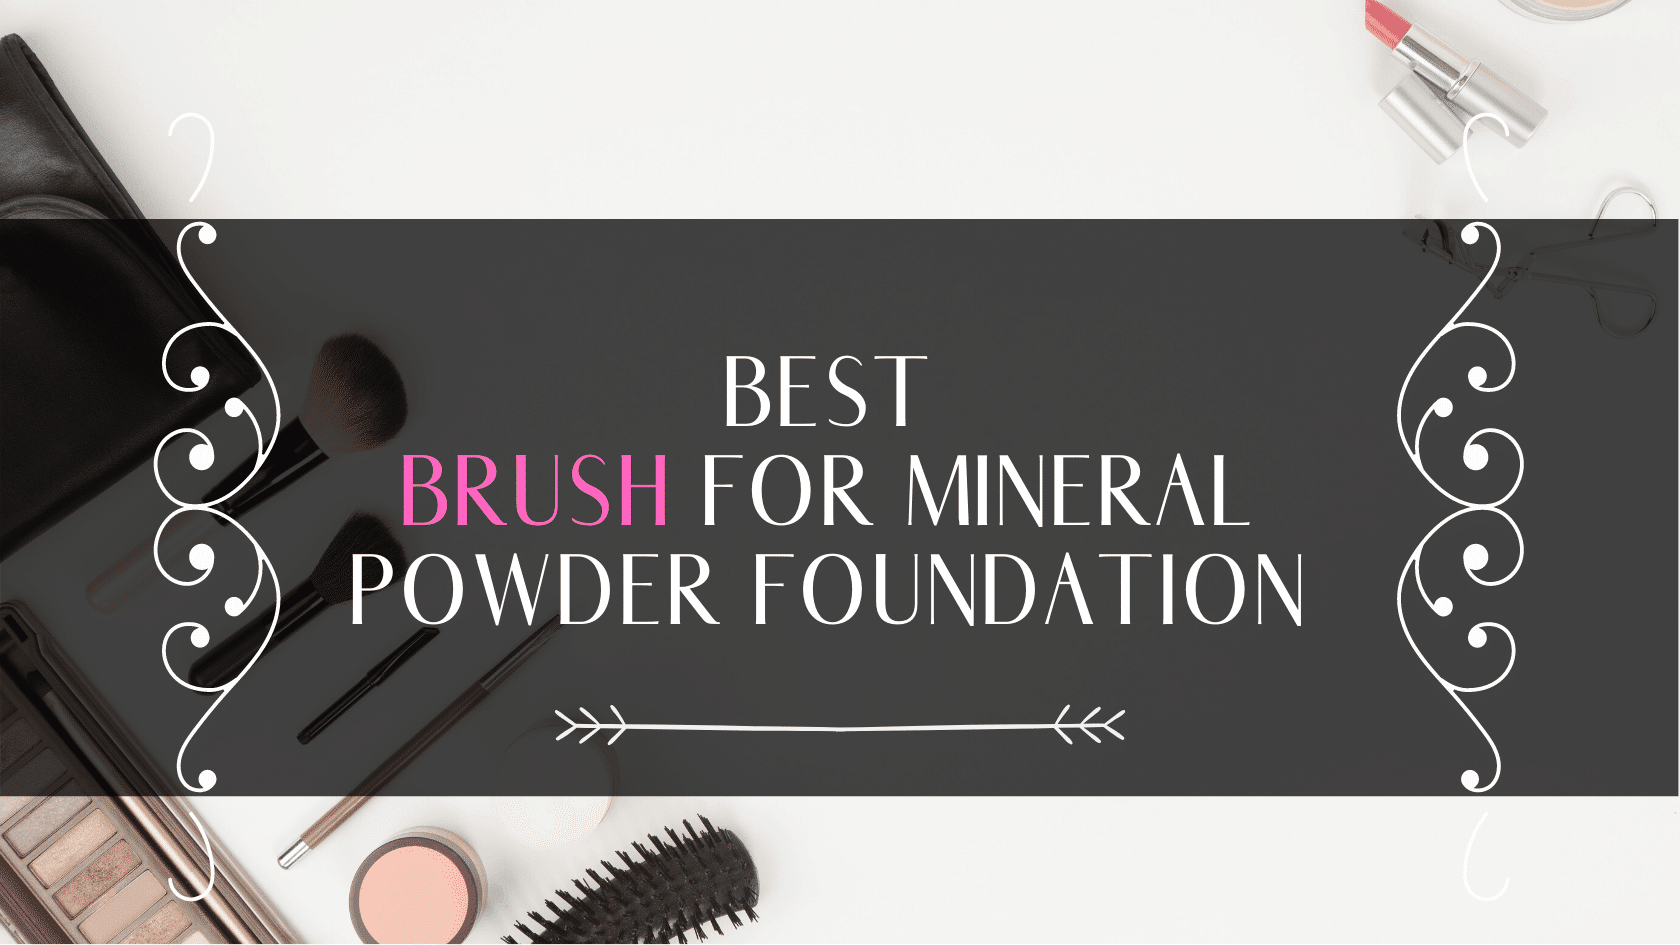 https://budgetbeautyblog.com/best-brush-for-mineral-powder-foundation/